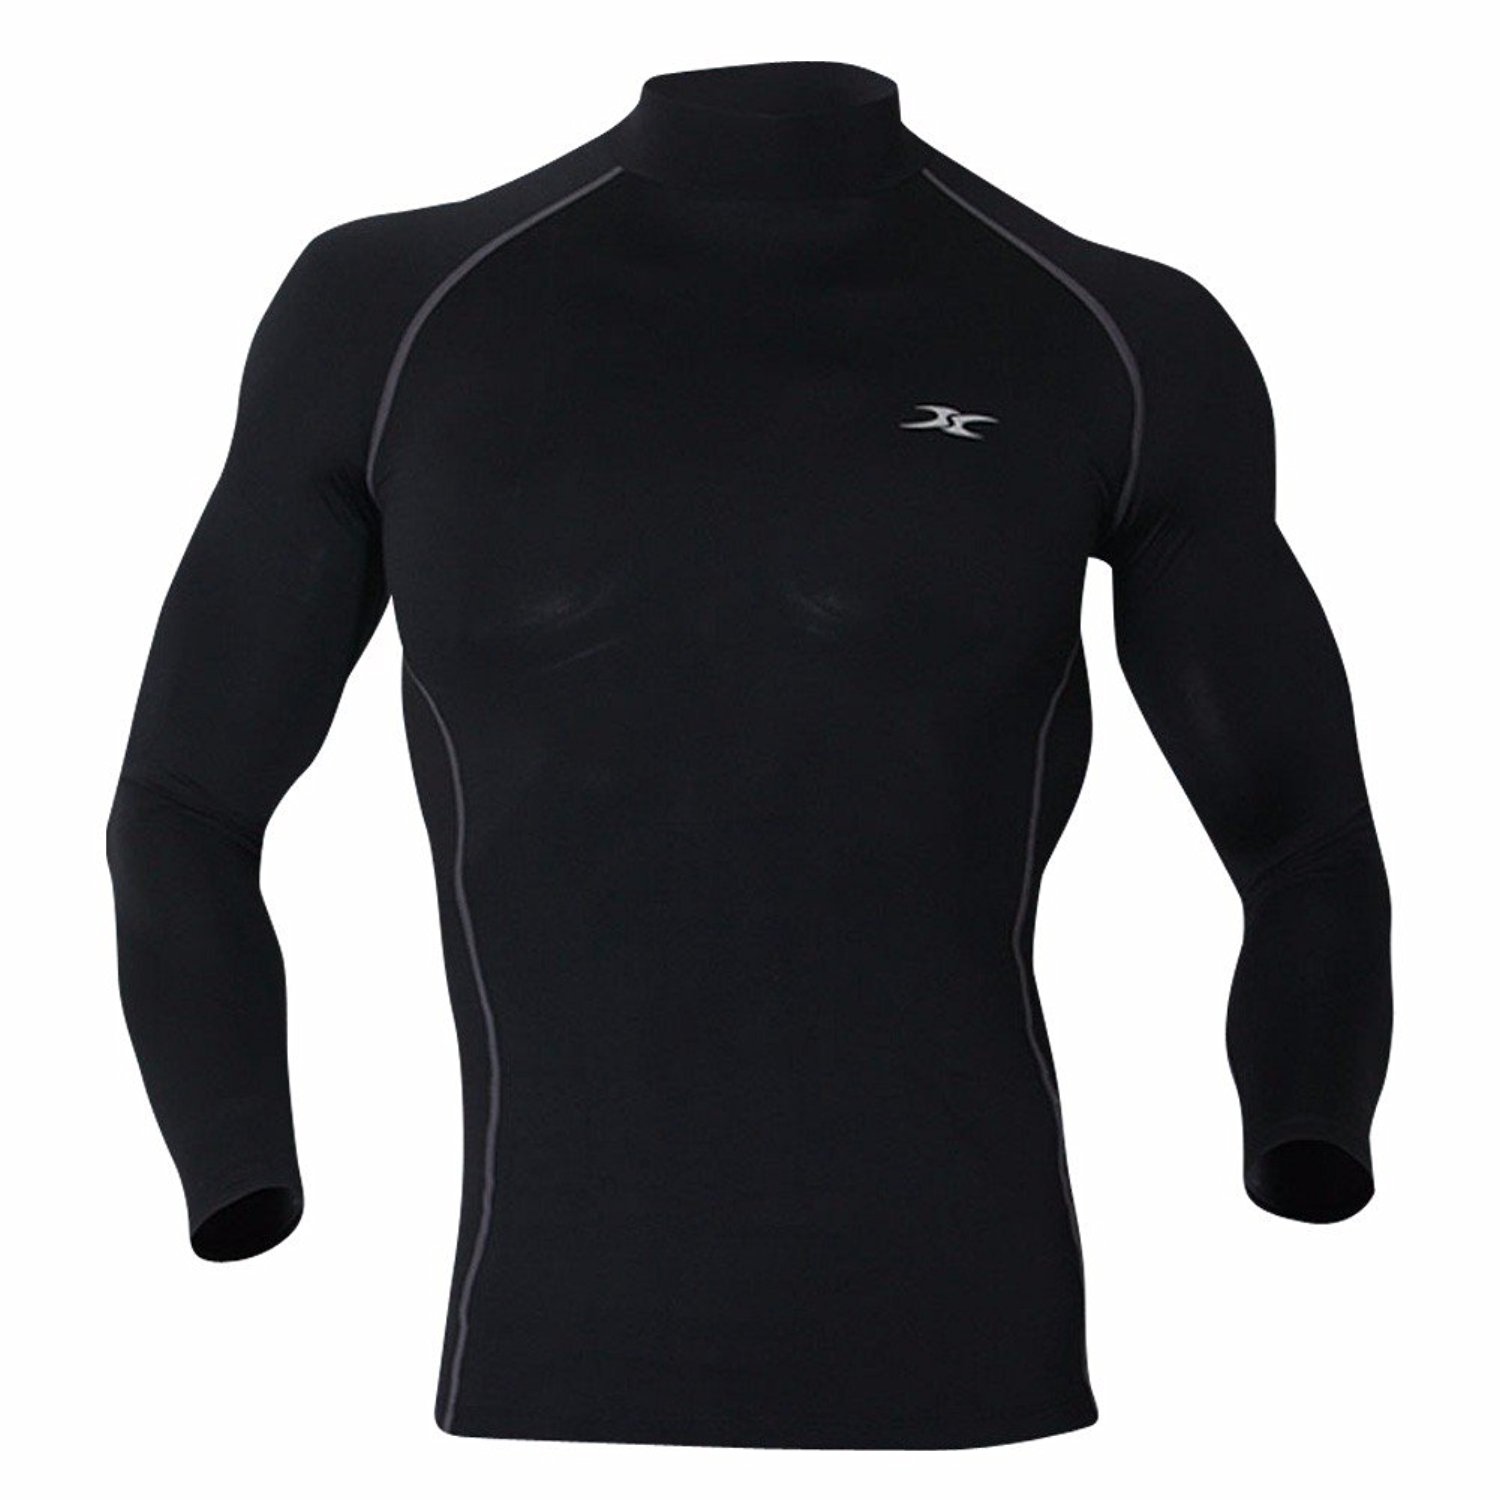 Lavento Mens Thermal Underwear Top Wicking Winter Warm Base Layer Shirts